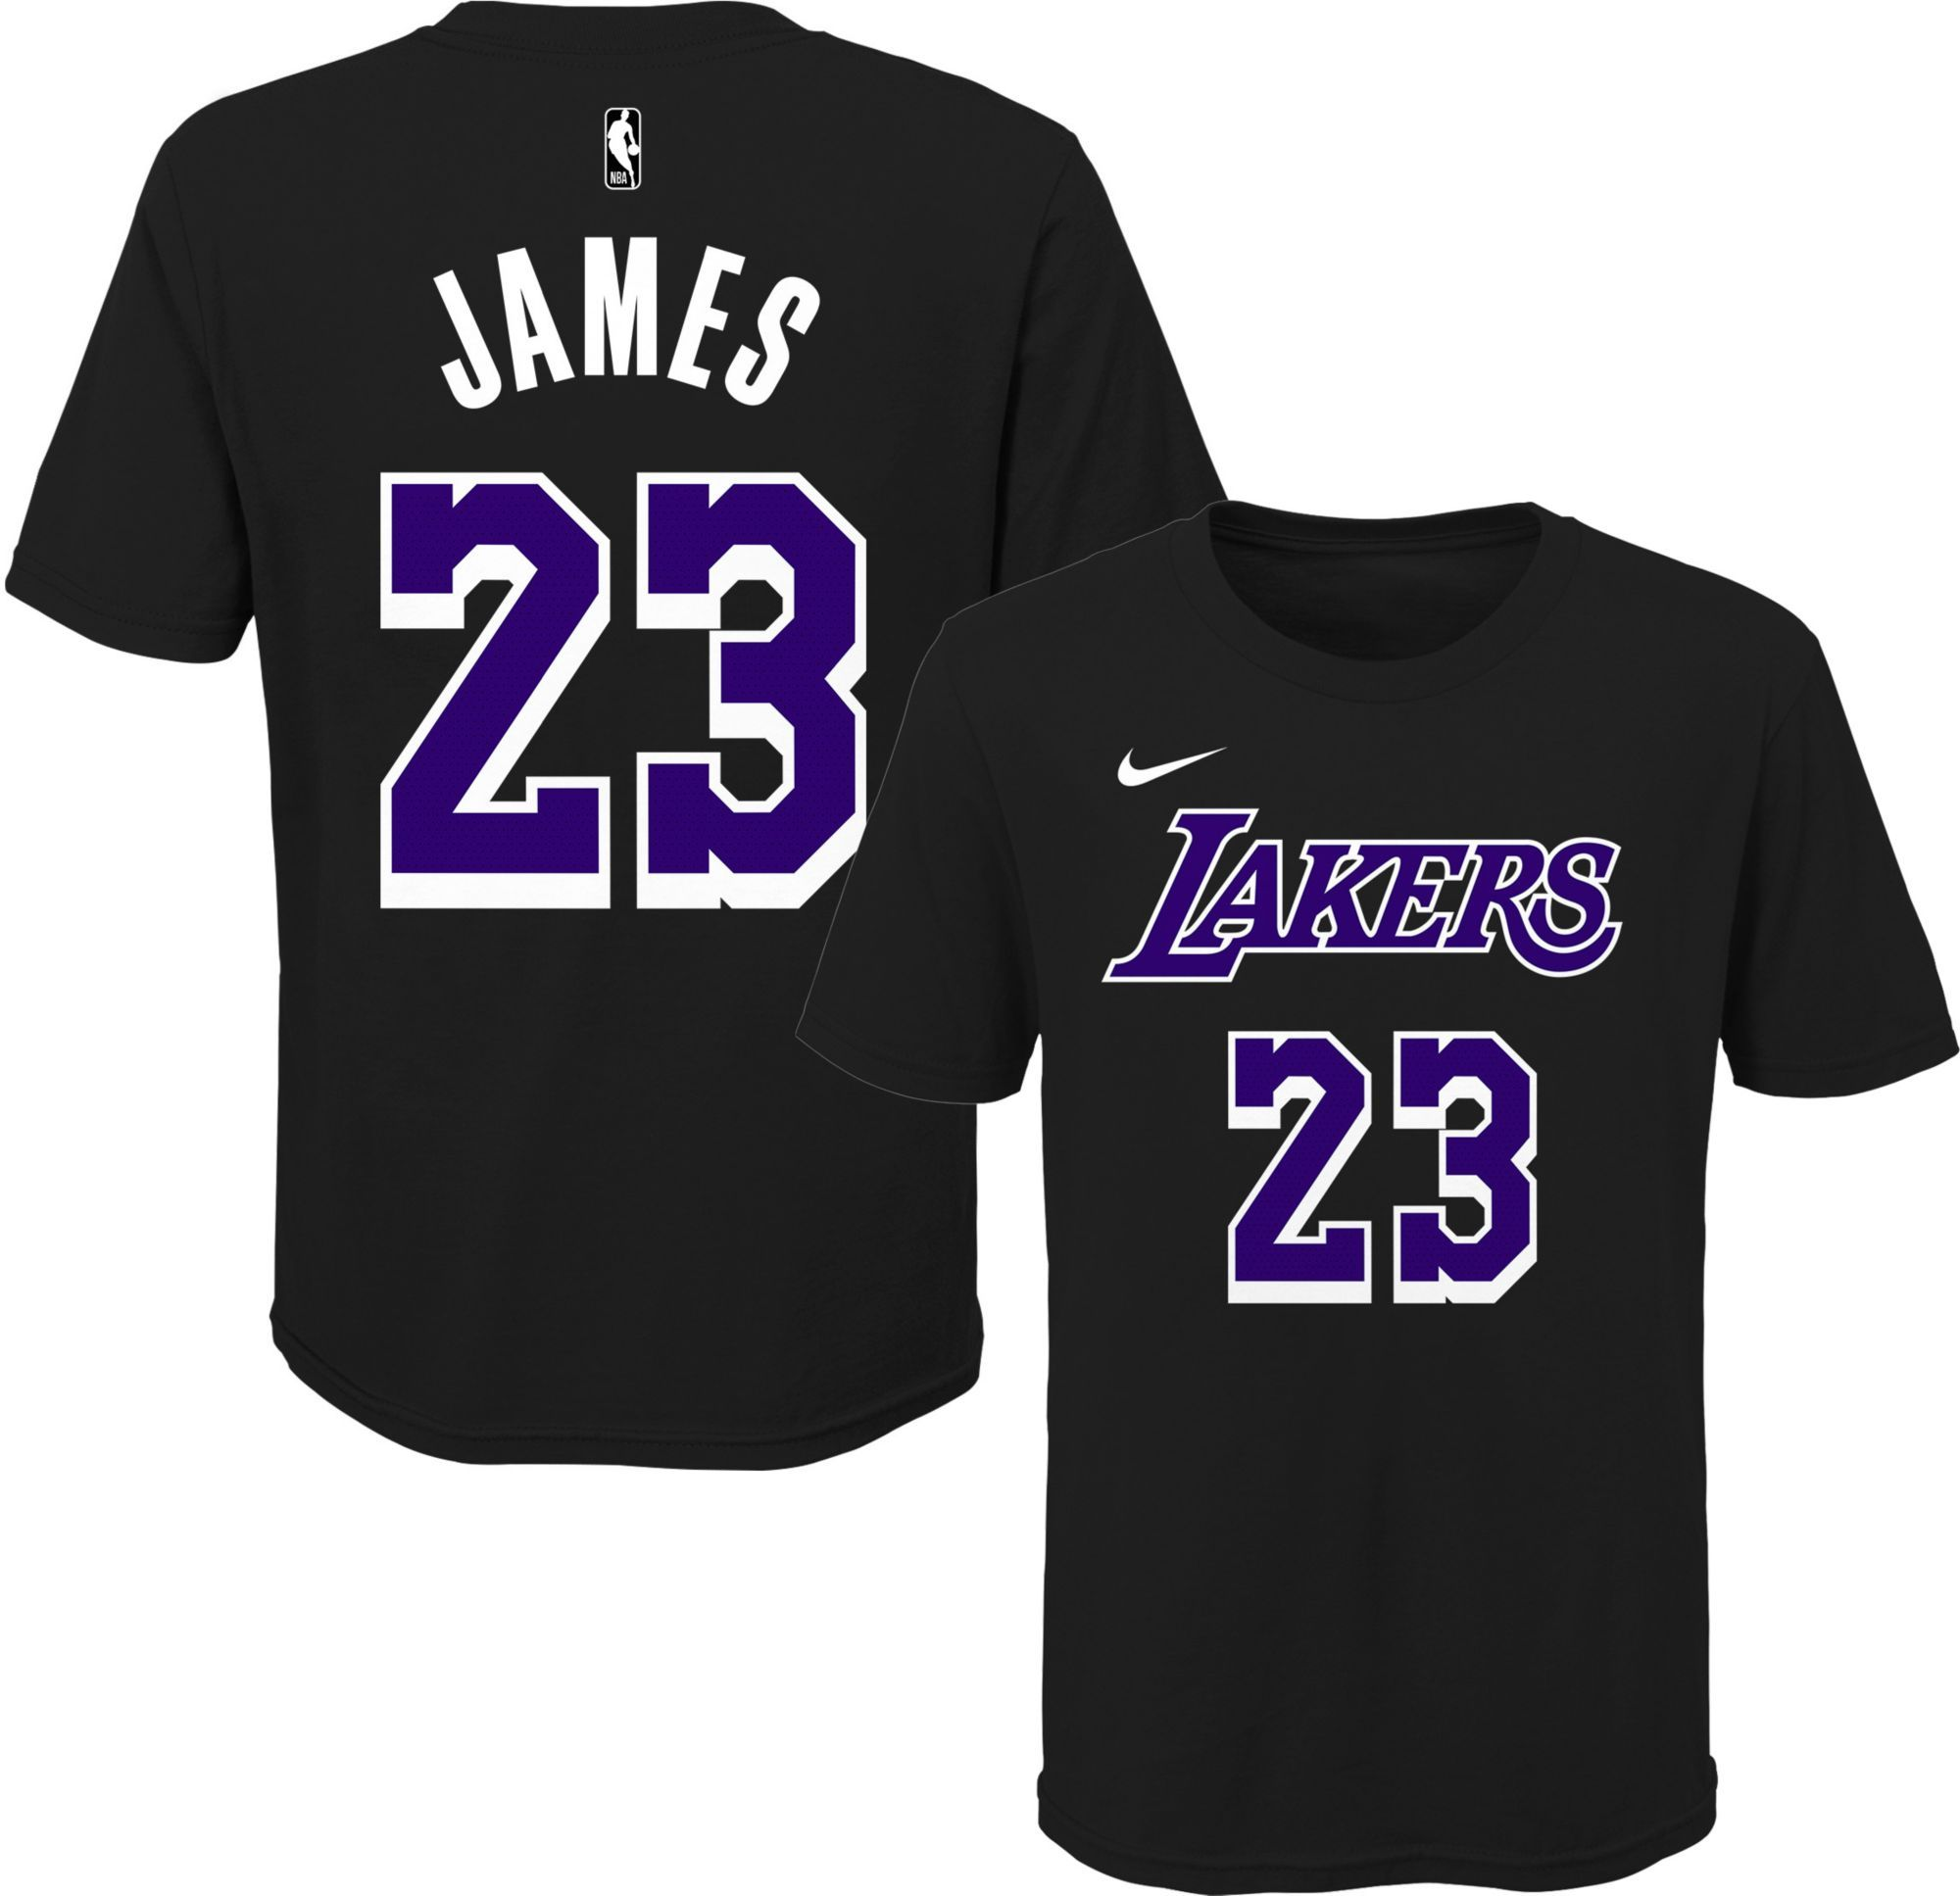 hot sale online 61395 27e6c Nike Youth Los Angeles Lakers LeBron James Dri-FIT Black T ...